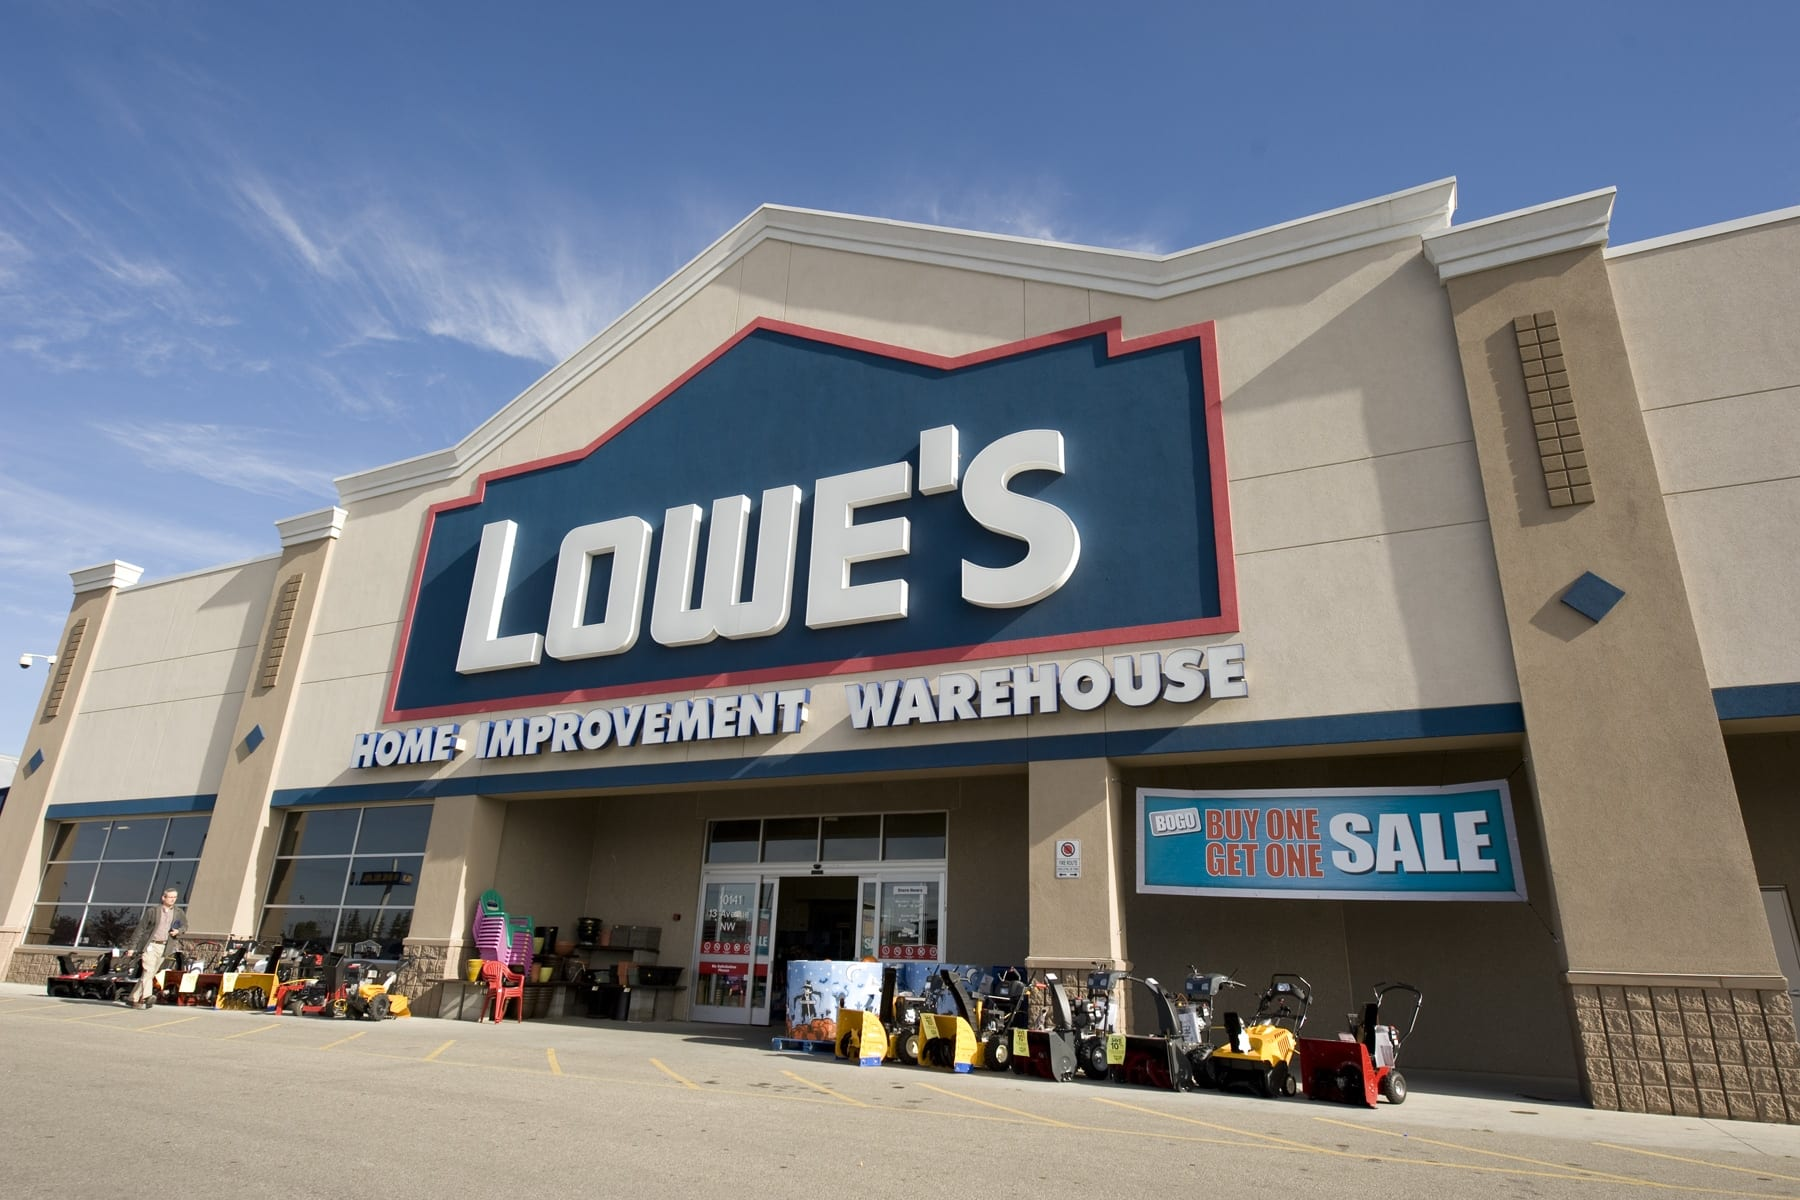 Http Www Southedmontoncommon Com Store Lowes Home Improvement Warehouse